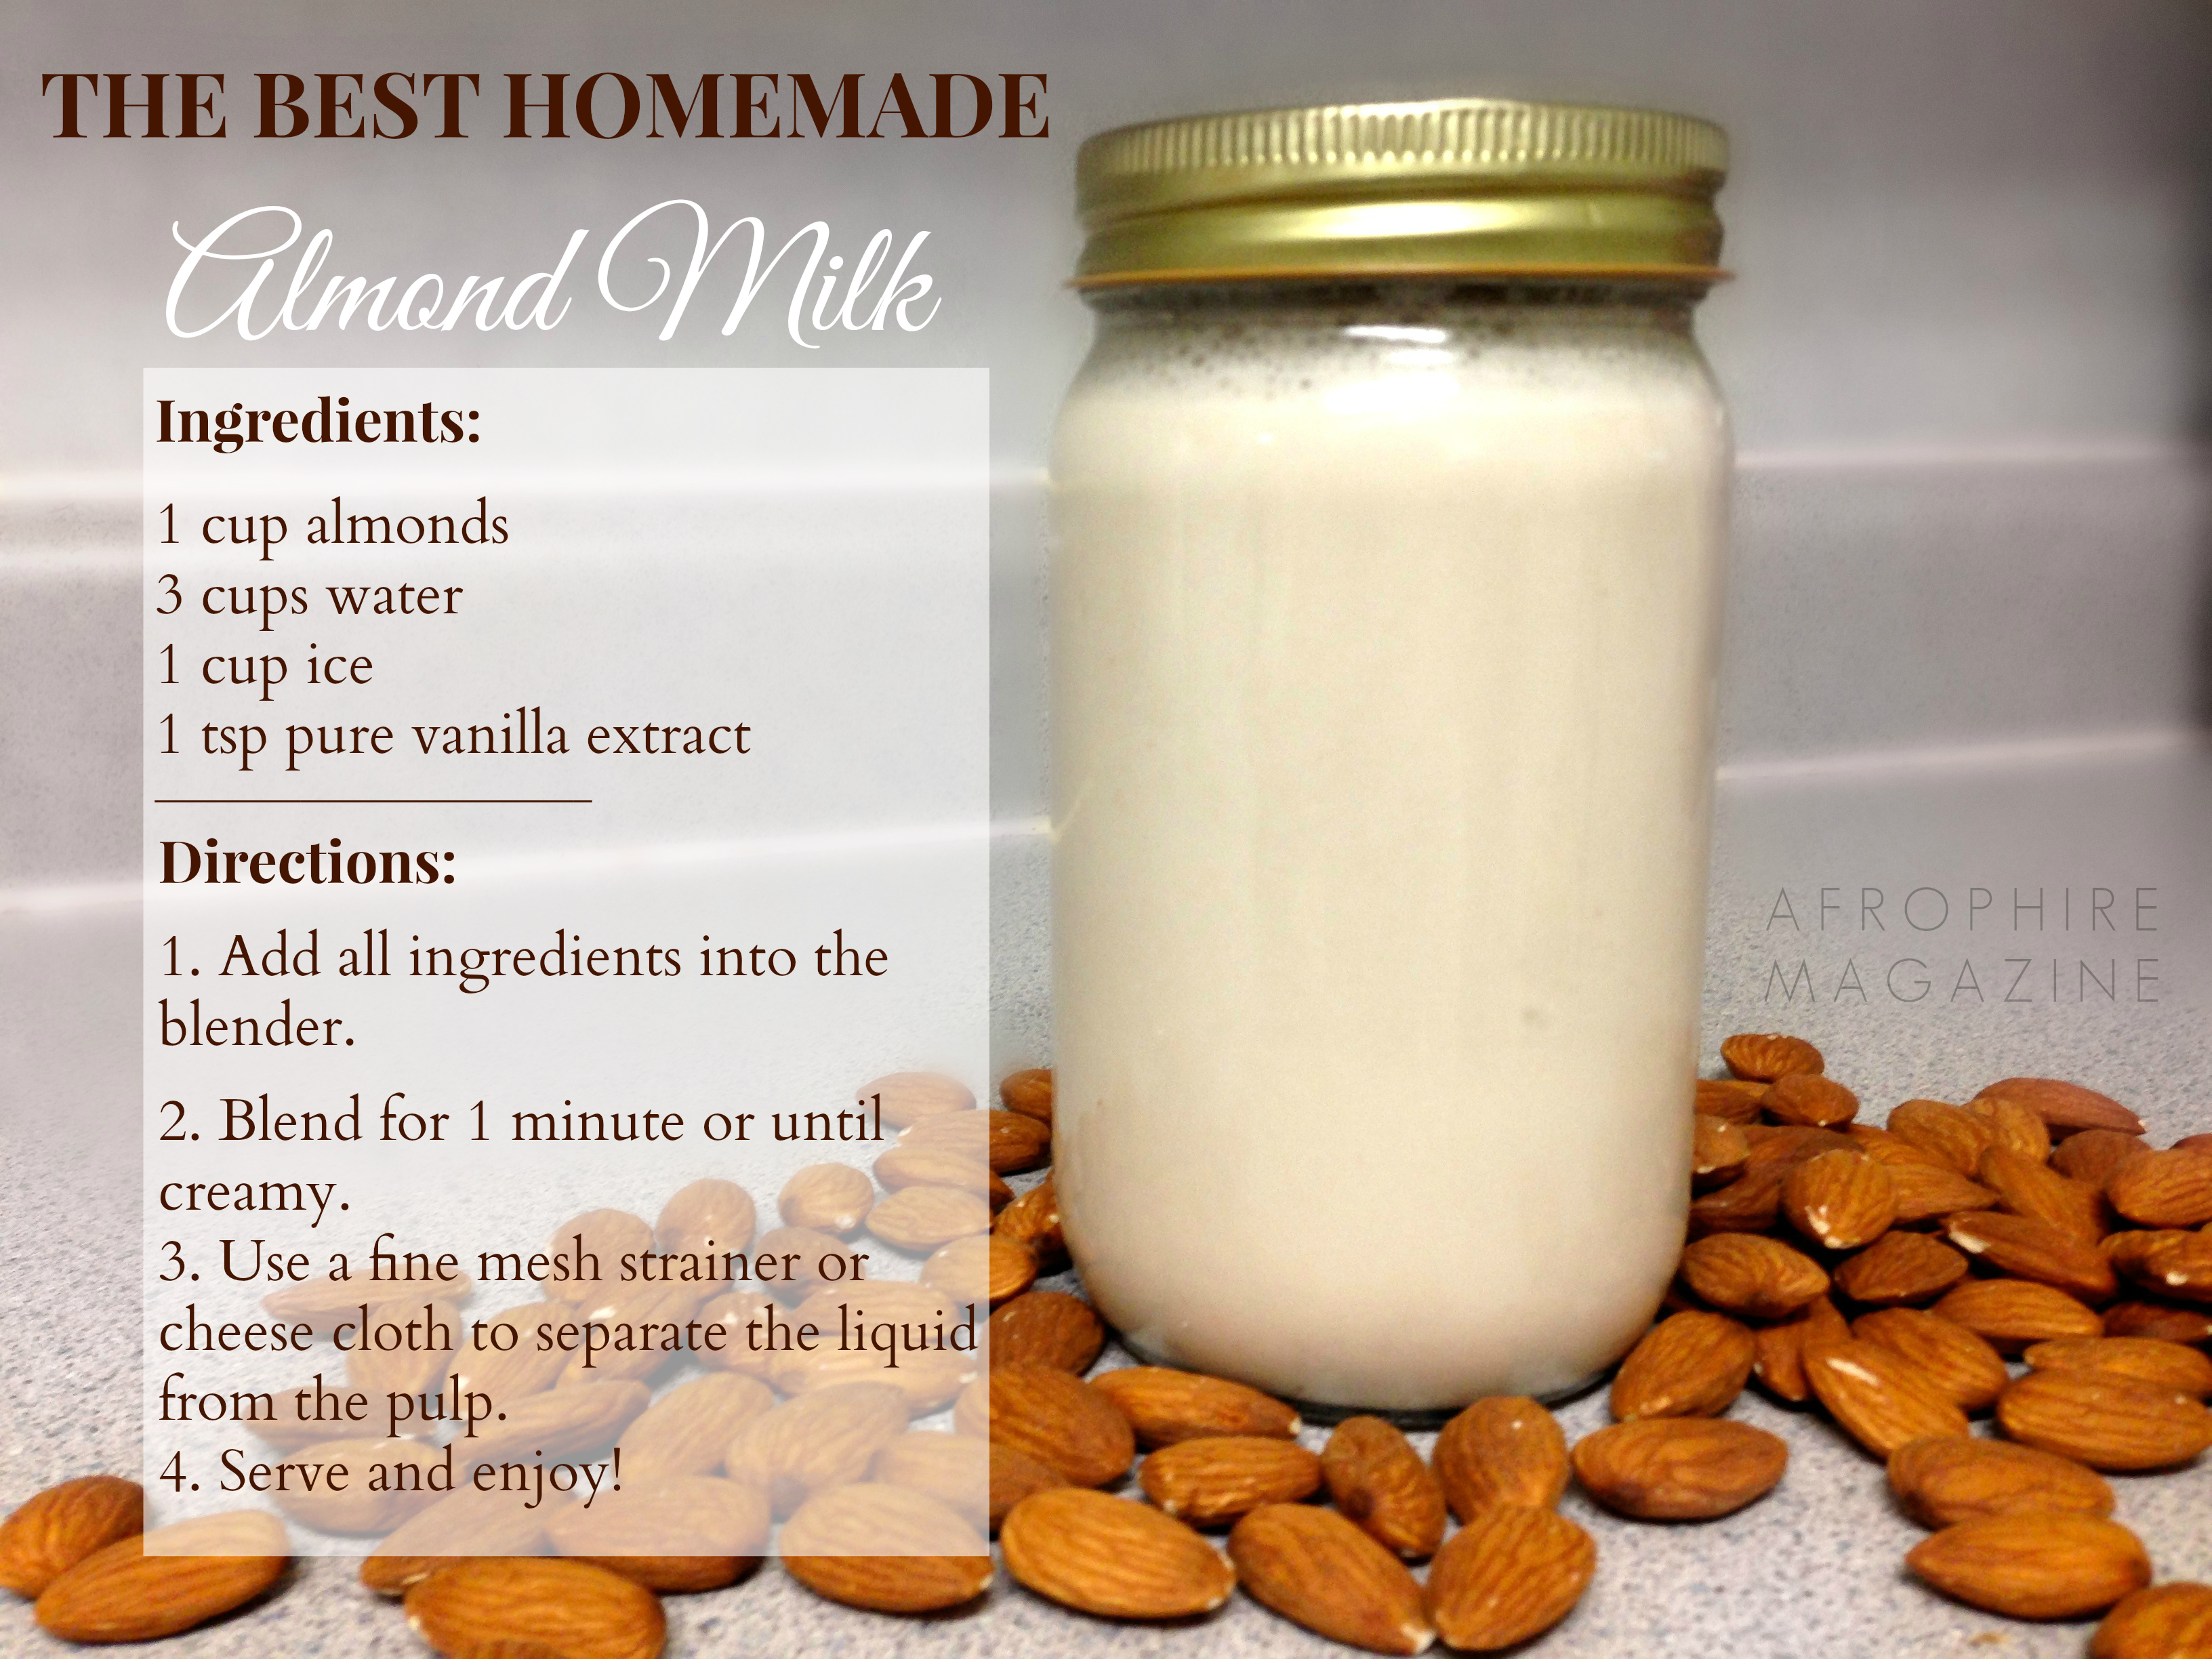 Homemade Almond Milk | Tasty Kitchen Blog